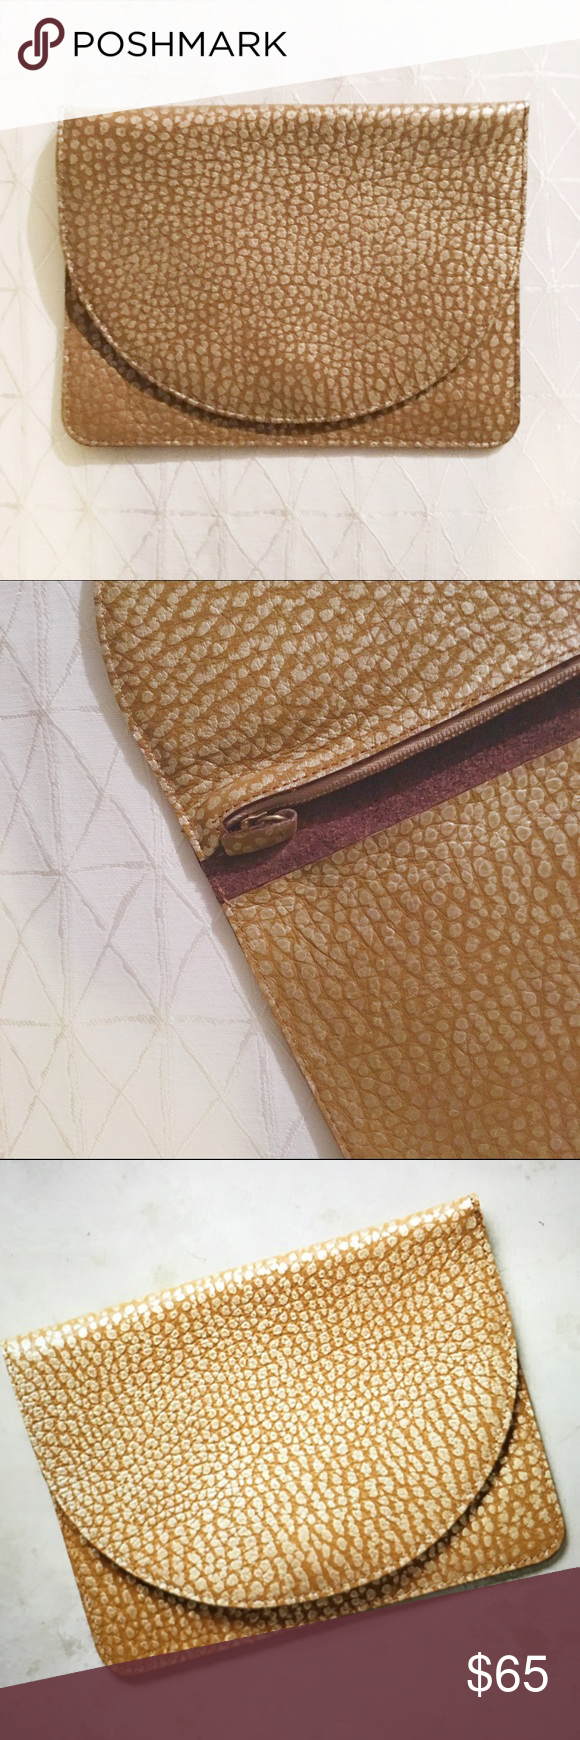 Anthropologie Fold Over Clutch Luna Half Moon 🌙 Fold Over clutch bought from Anthropologie. Beautiful brown leather with gold detail. Love this so much, but don't wear clutches a ton. Used once, so it is in excellent condition! Has one zipper pocket.  Minor History is the brand. Anthropologie Bags Clutches & Wristlets